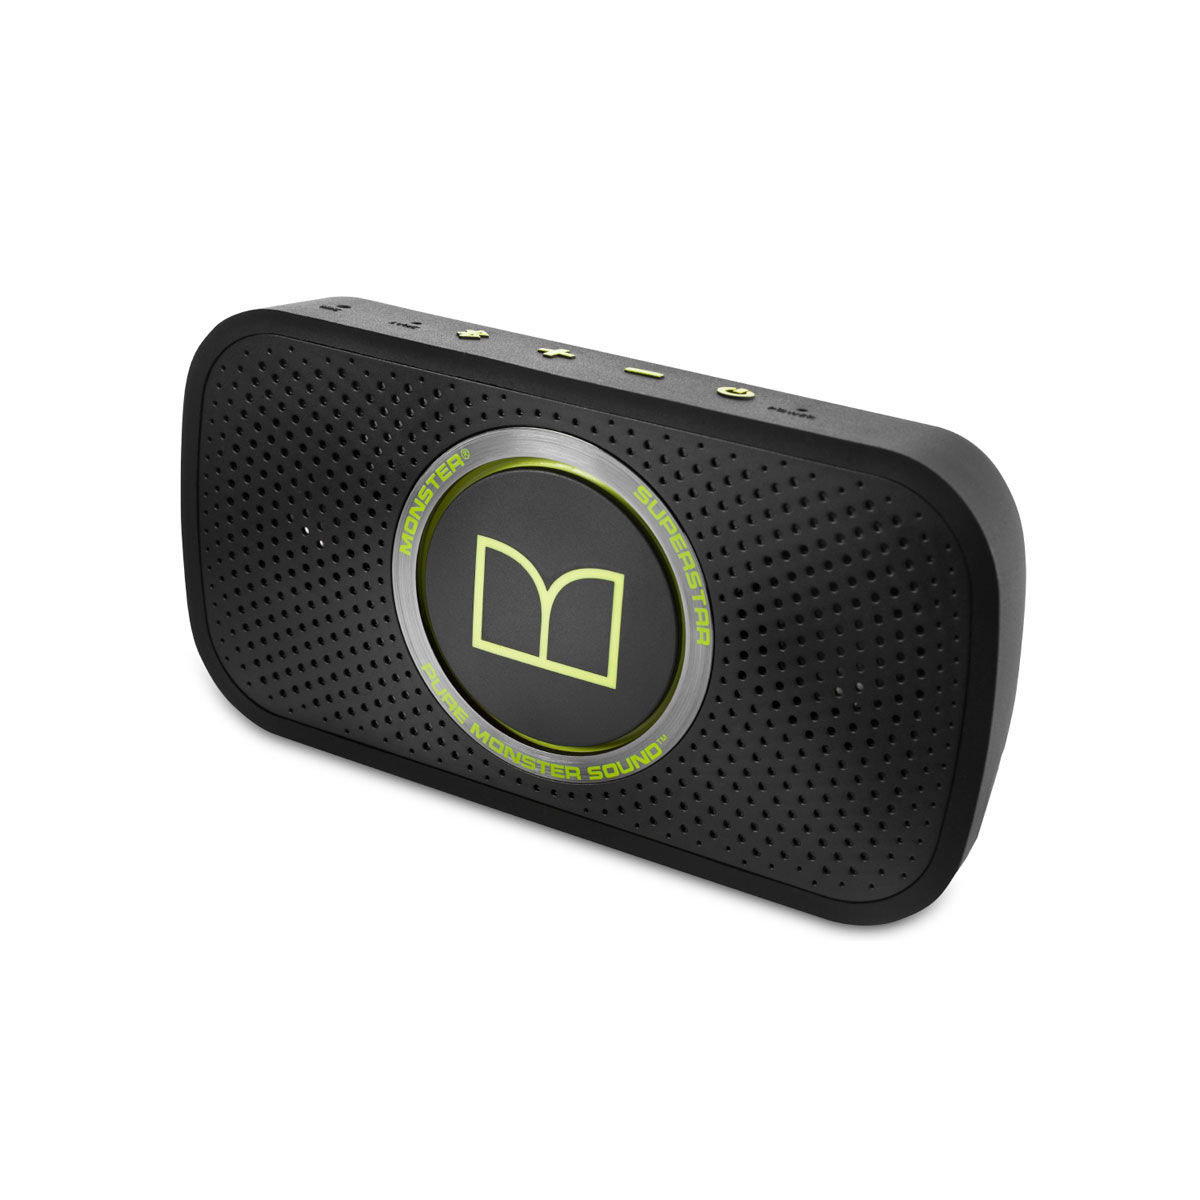 Dock & Enceinte Bluetooth Monster SuperStar Vert Enceinte sans fil bluetooth